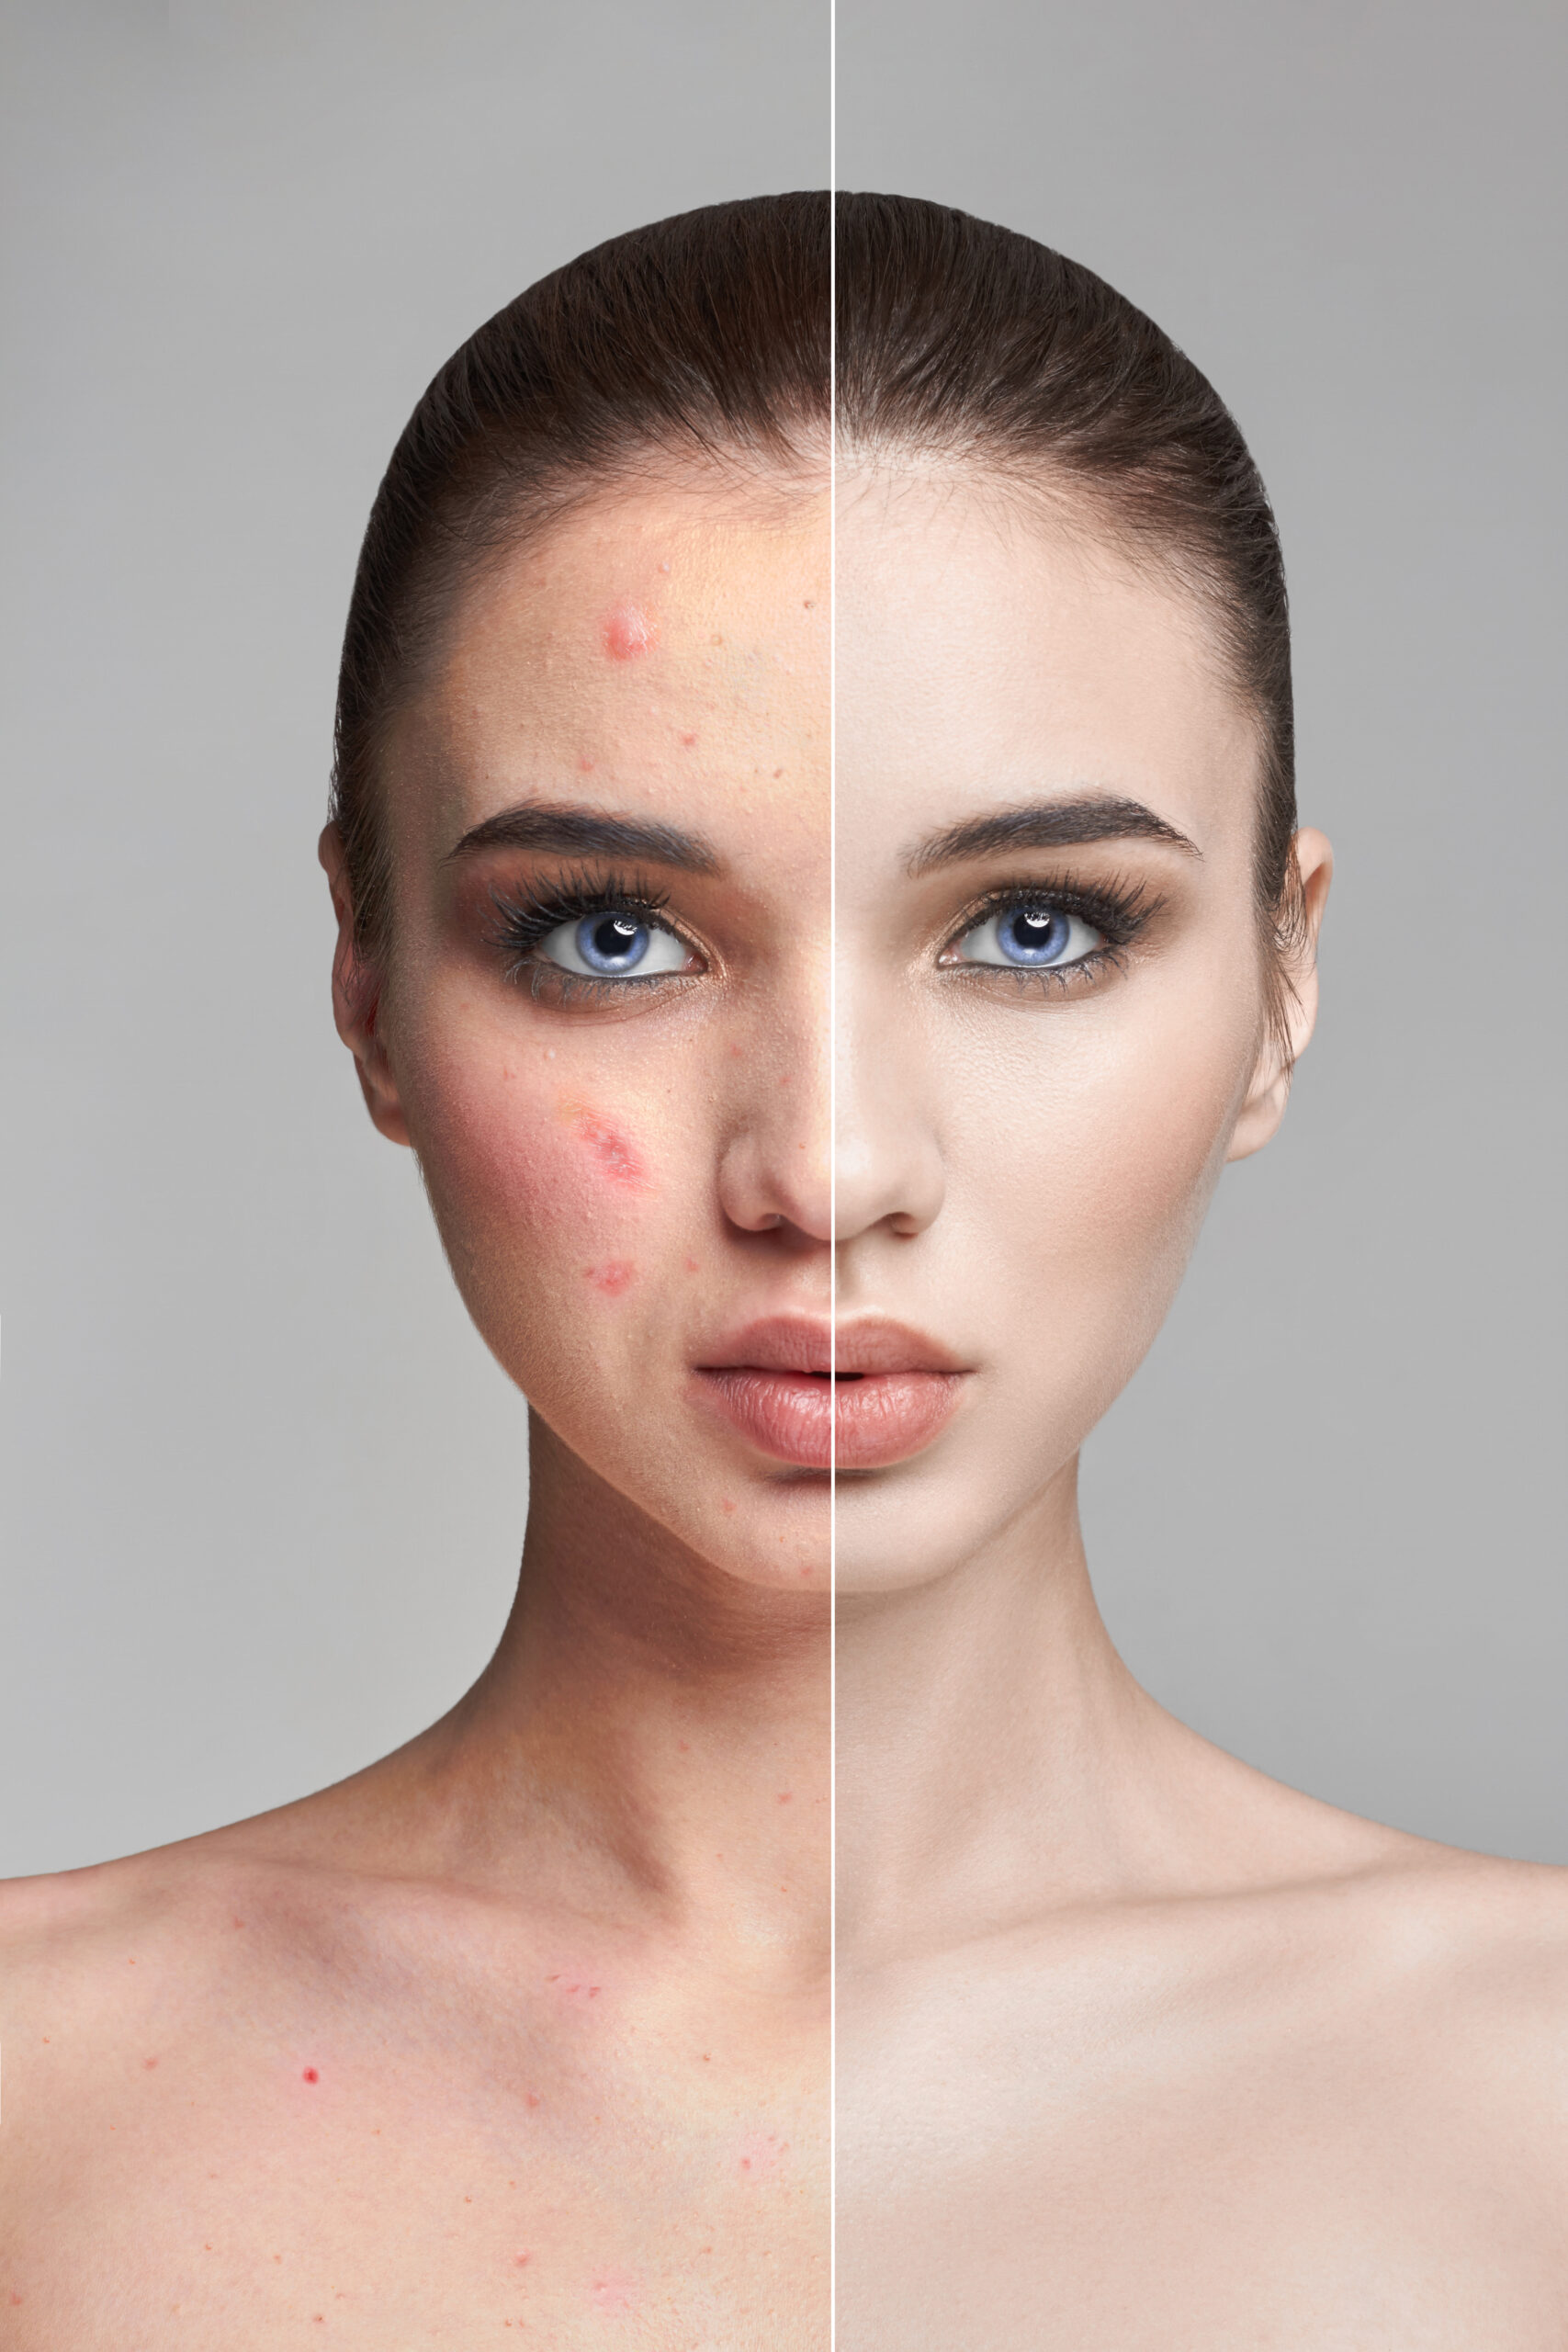 Pimples and acne on the woman's face before and after. Cosmetics to remove pimples and blackheads. Natural natural skin skin. Beautiful woman face closeup, dermatology